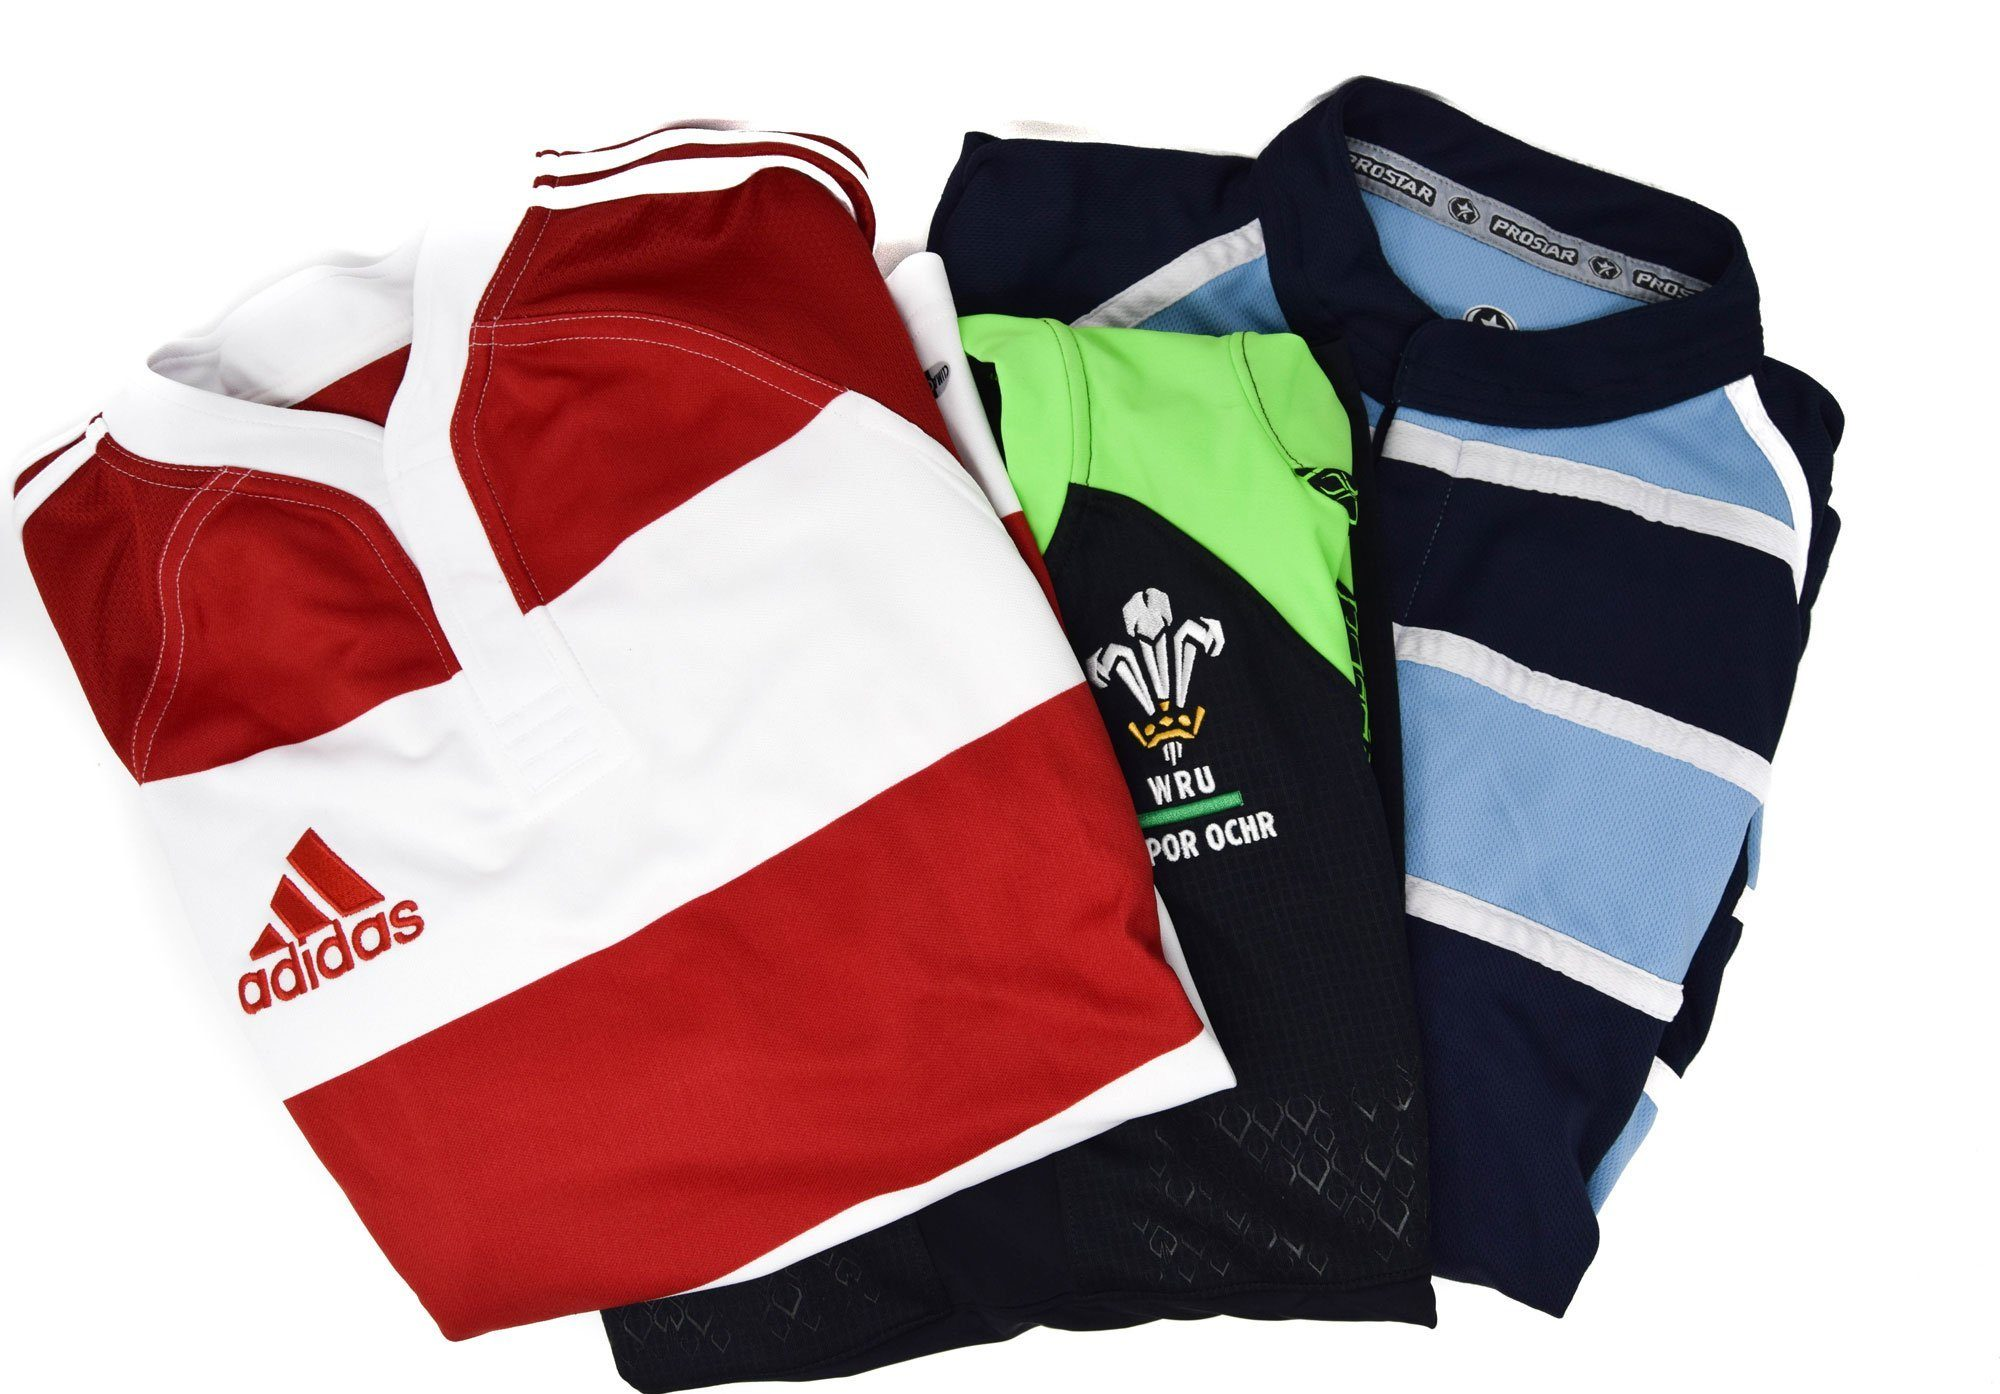 Match Apparel,Youth - Practice Jerseys Grab Bag - Youth & Adult